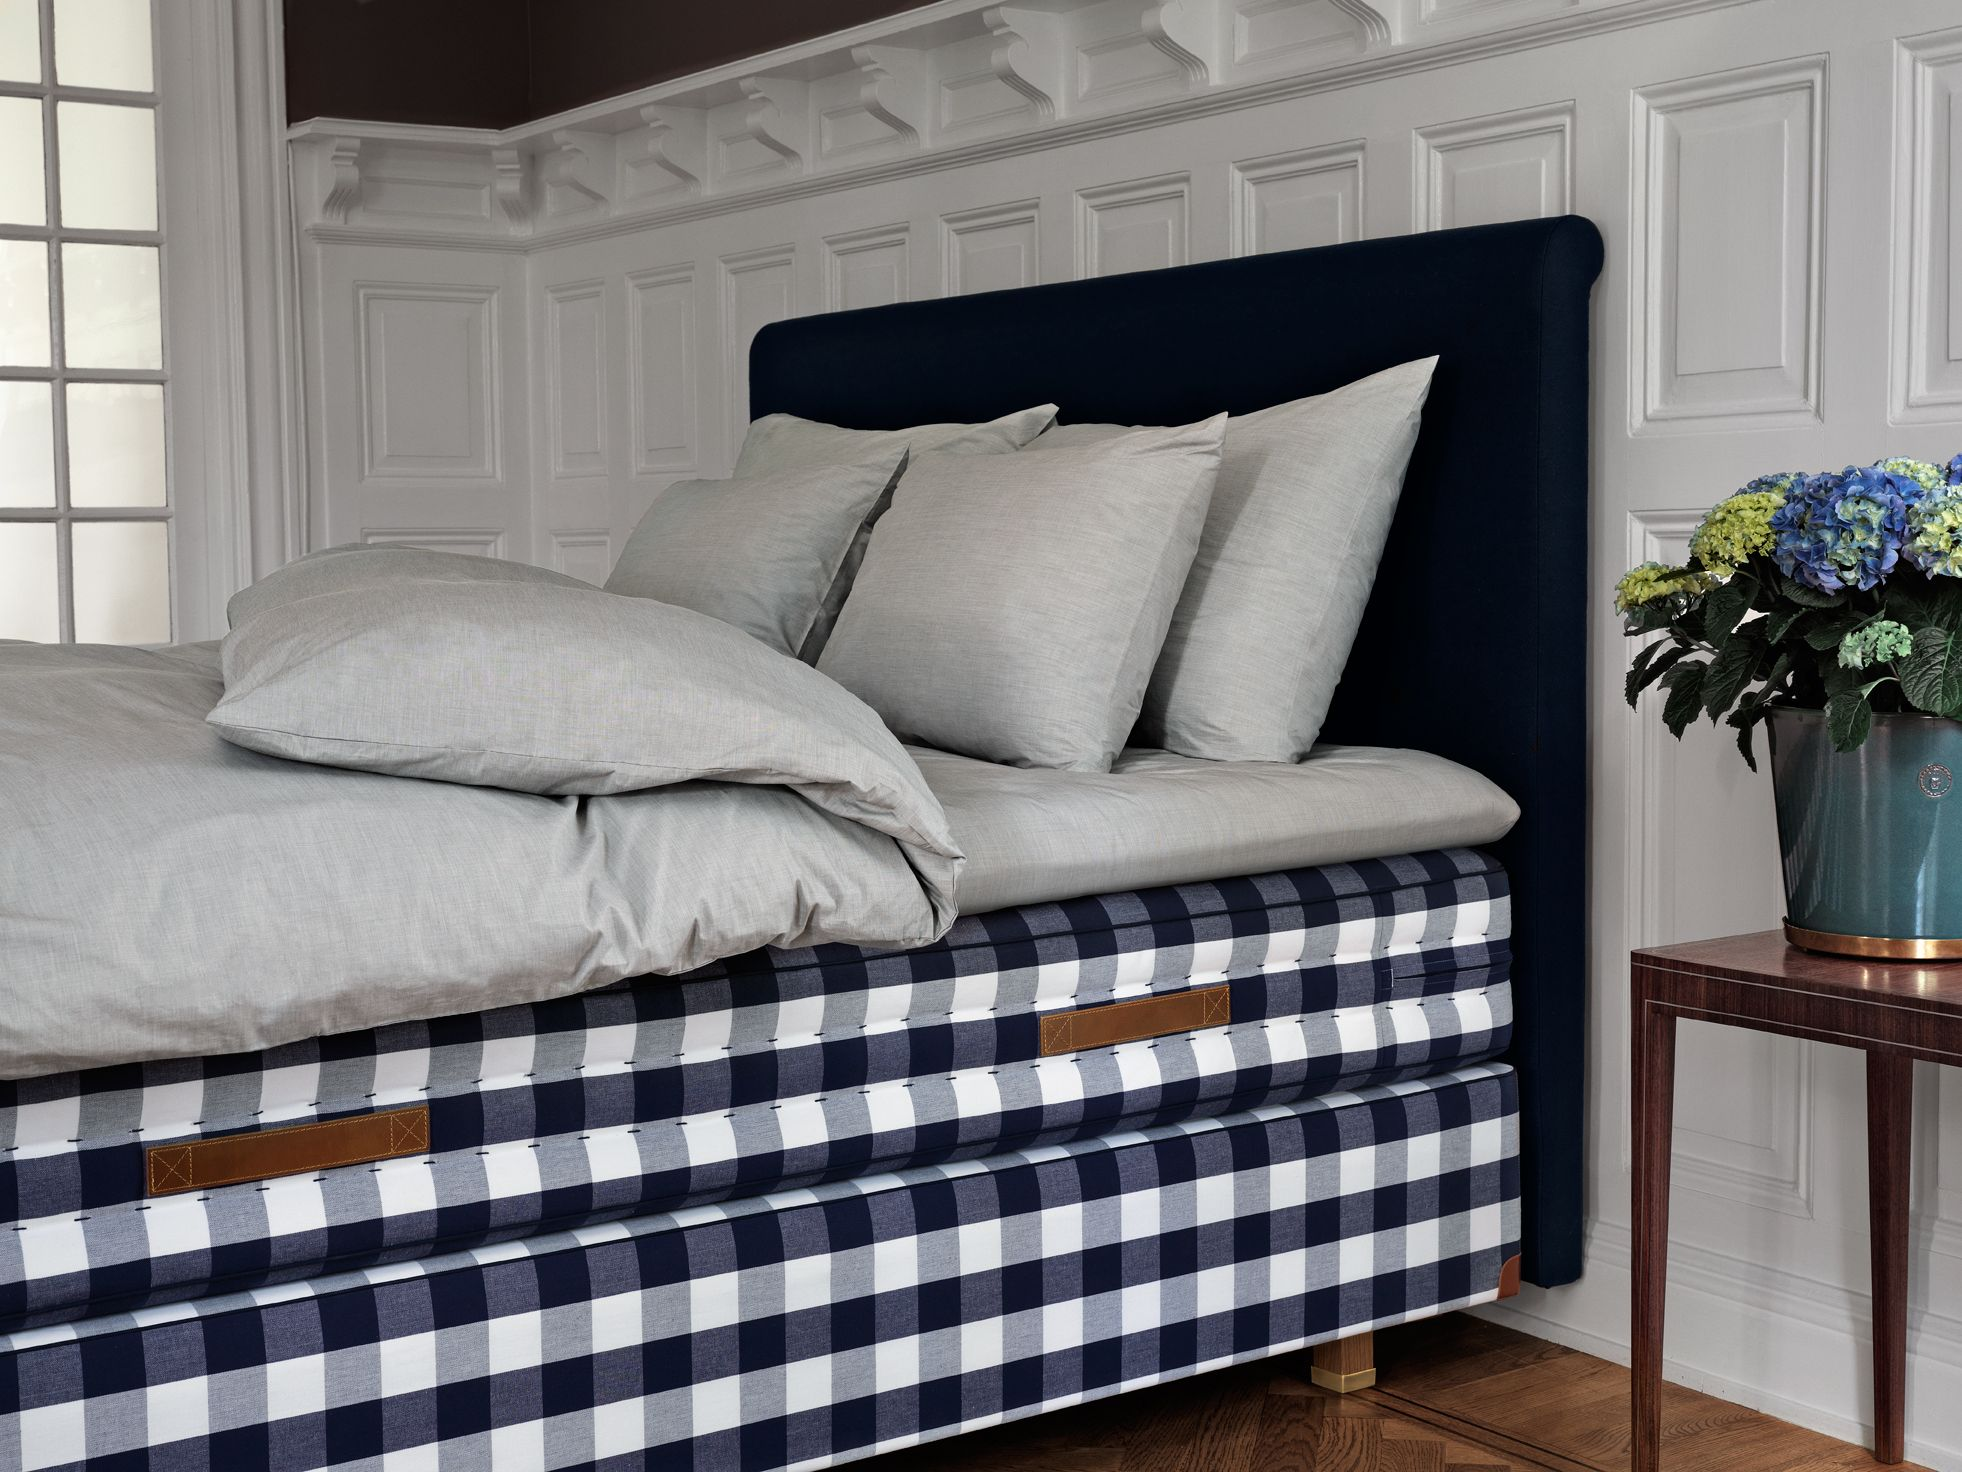 hastens limited edition 2015 close up new room pinterest